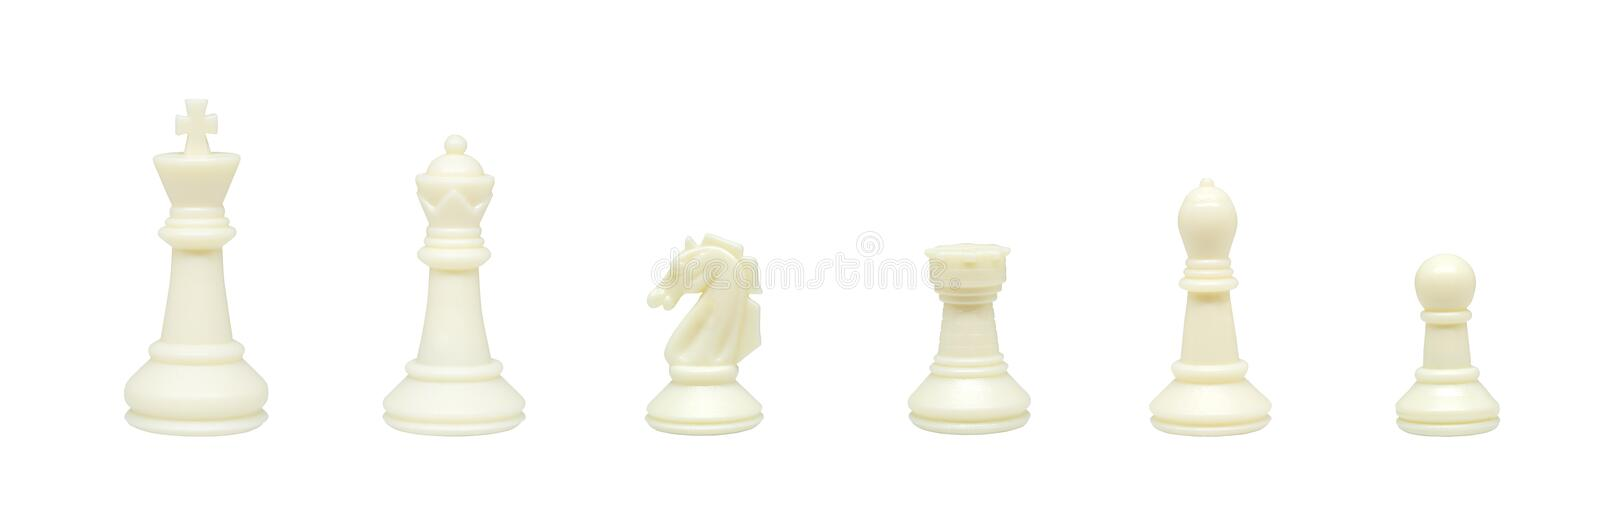 Row of set of six white chess pieces figurines standing on white background. royalty free stock images